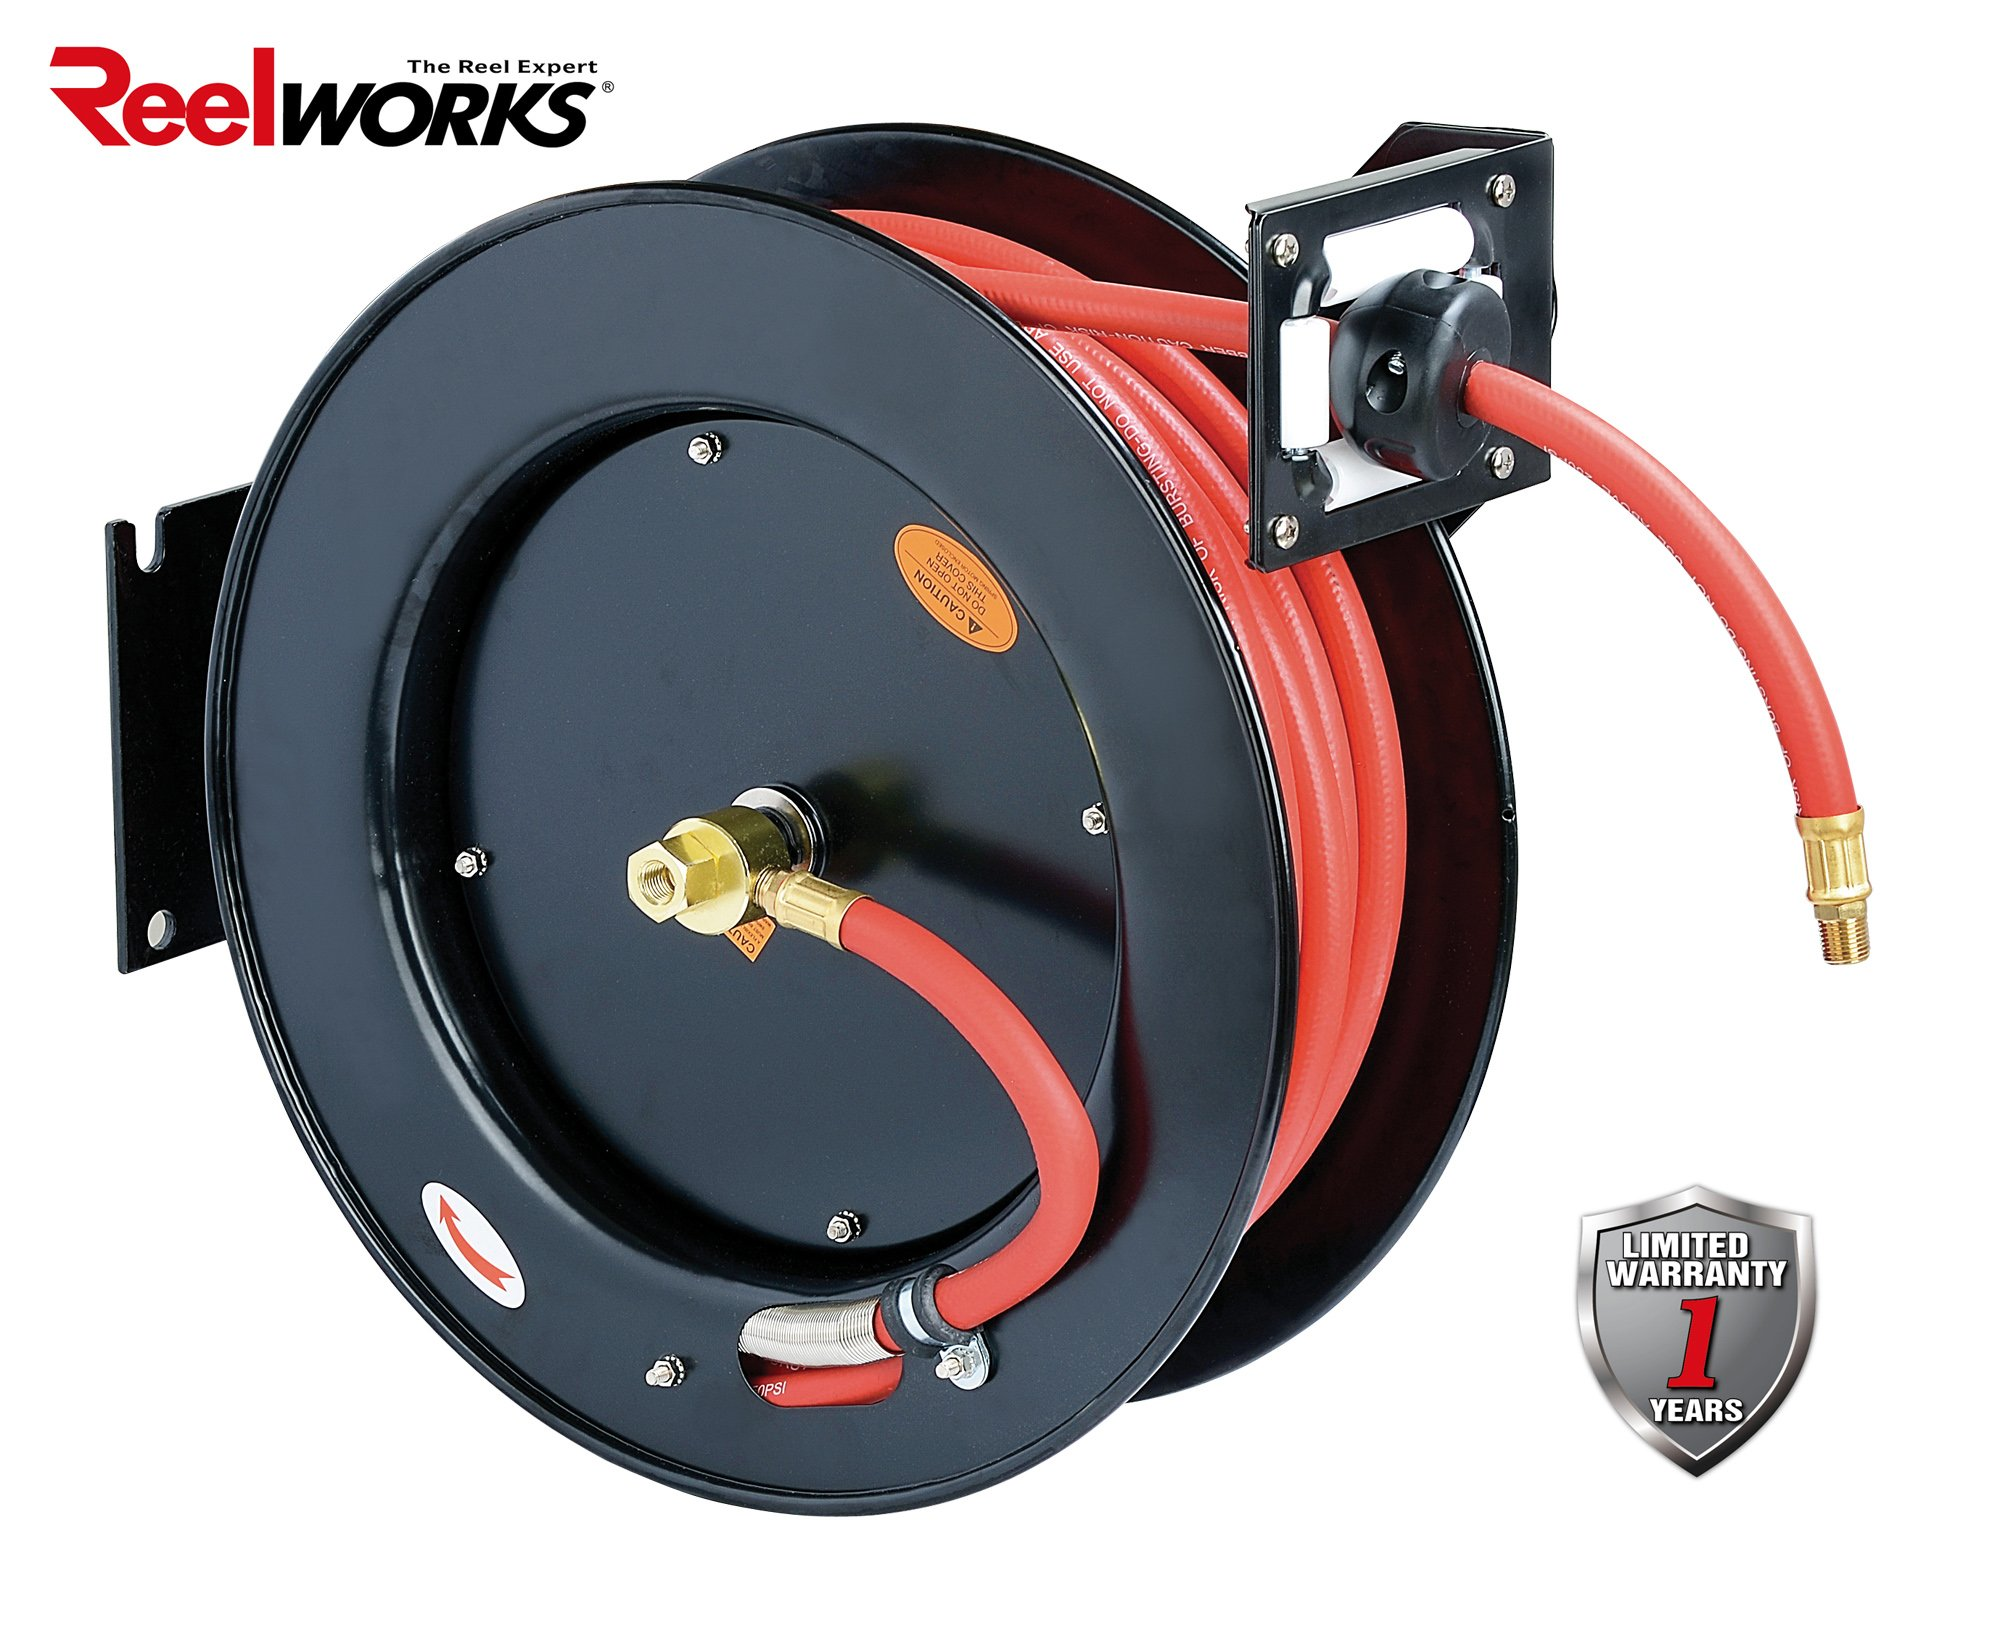 ReelWorks L815153HA Steel Retractable Air Compressor/Water Hose Reel with 3/8'' x 50' Hybrid Polymer Hose, Max. 300 psi